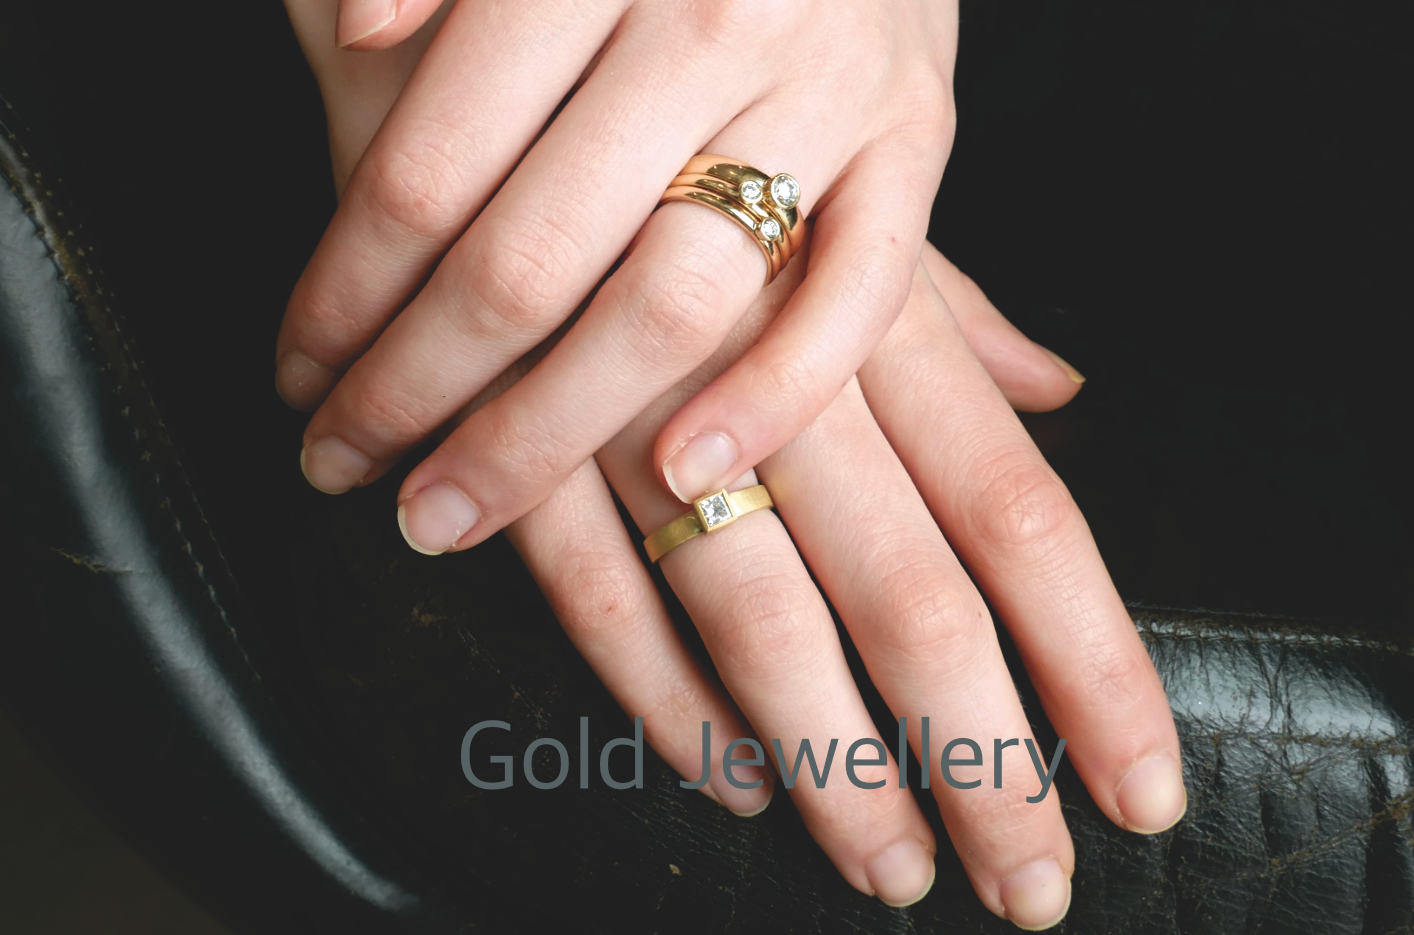 alice robson gold jewellery